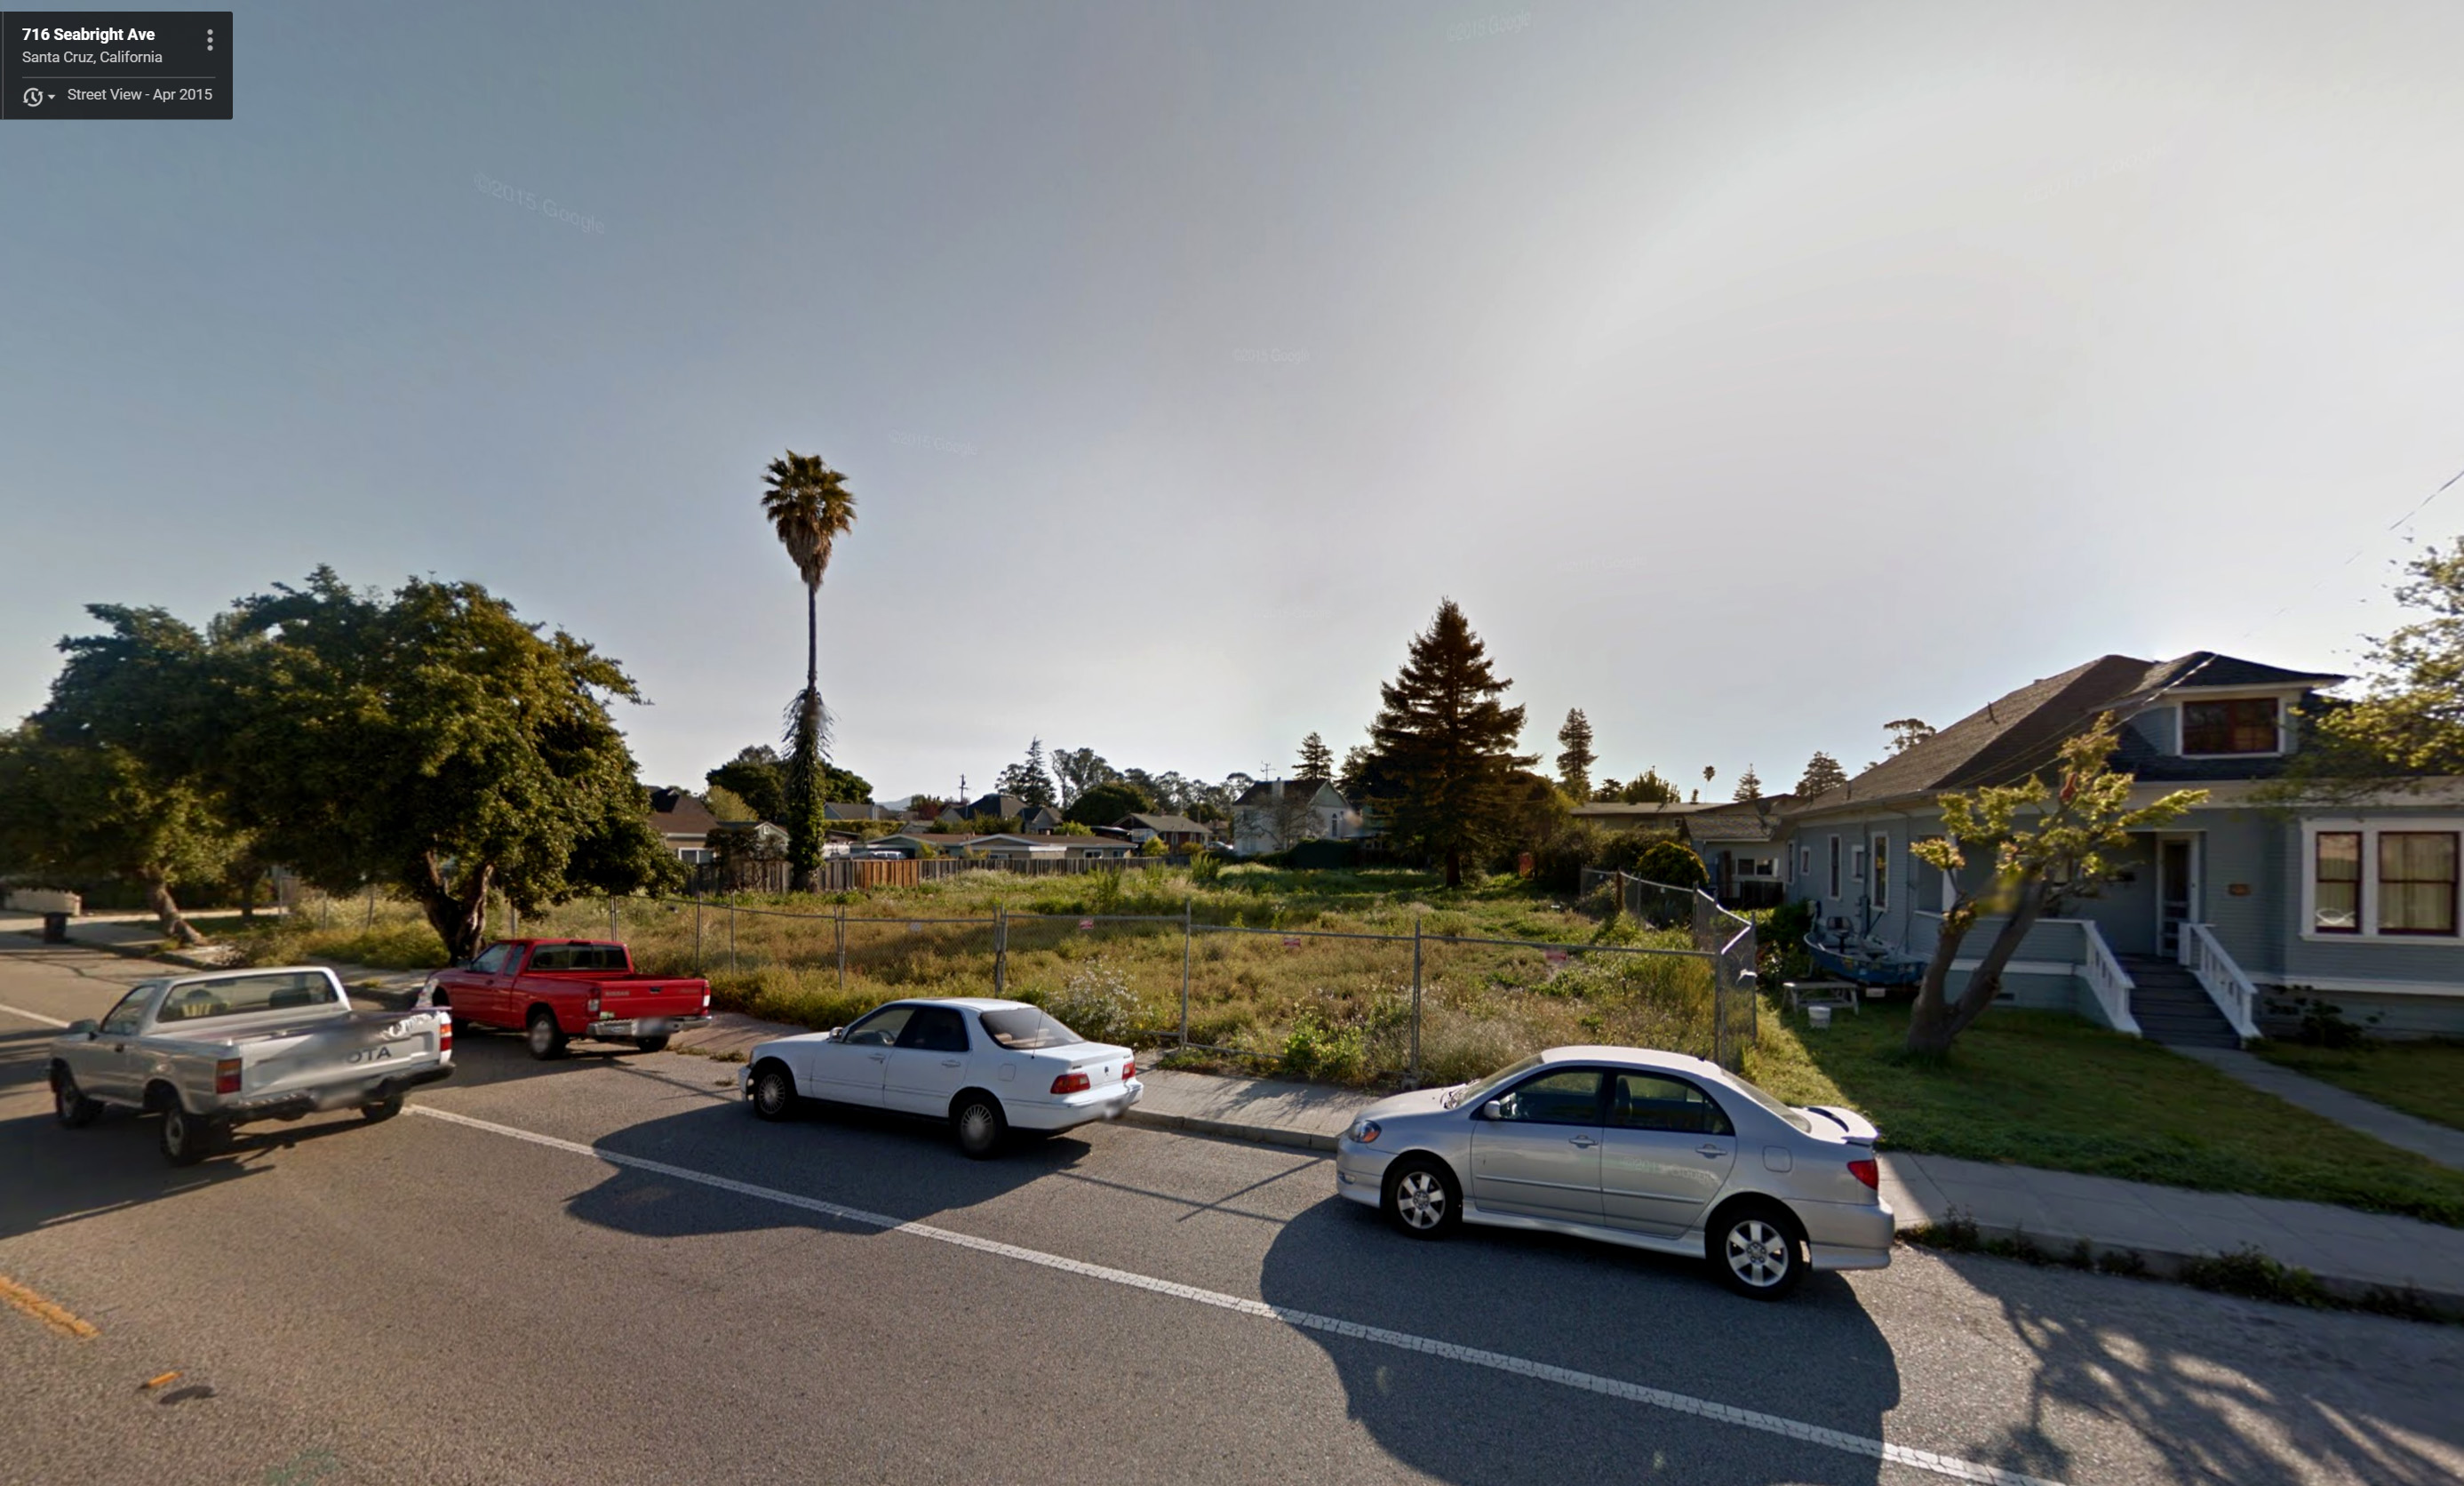 716-Seabright-street-view